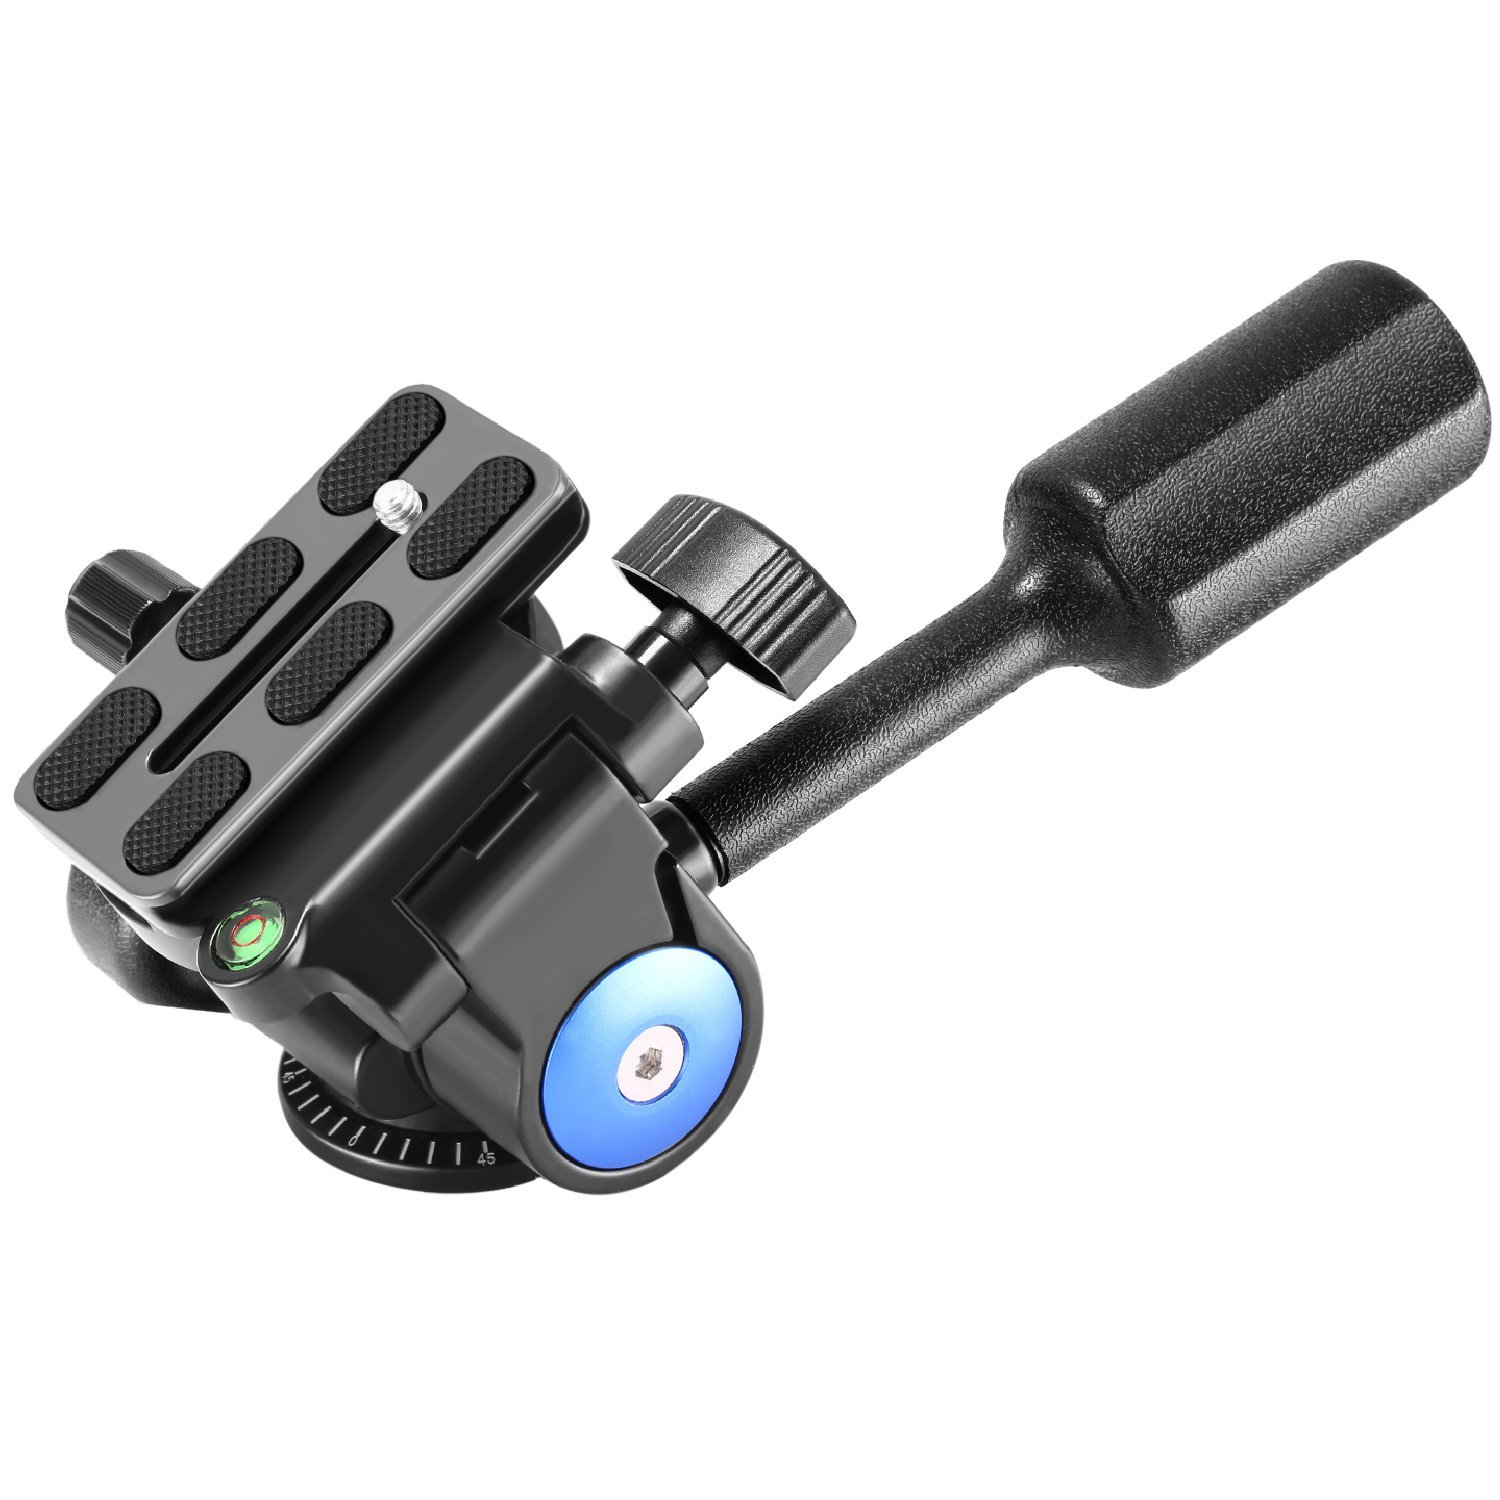 Neewer Camera Tripod Handle Ball Head with 1/4'' QR Plate,3-Dimensional 360 Degree Rotation for Tripod,Slider,DSLR Camera,Camcorder,Load up to 22lbs